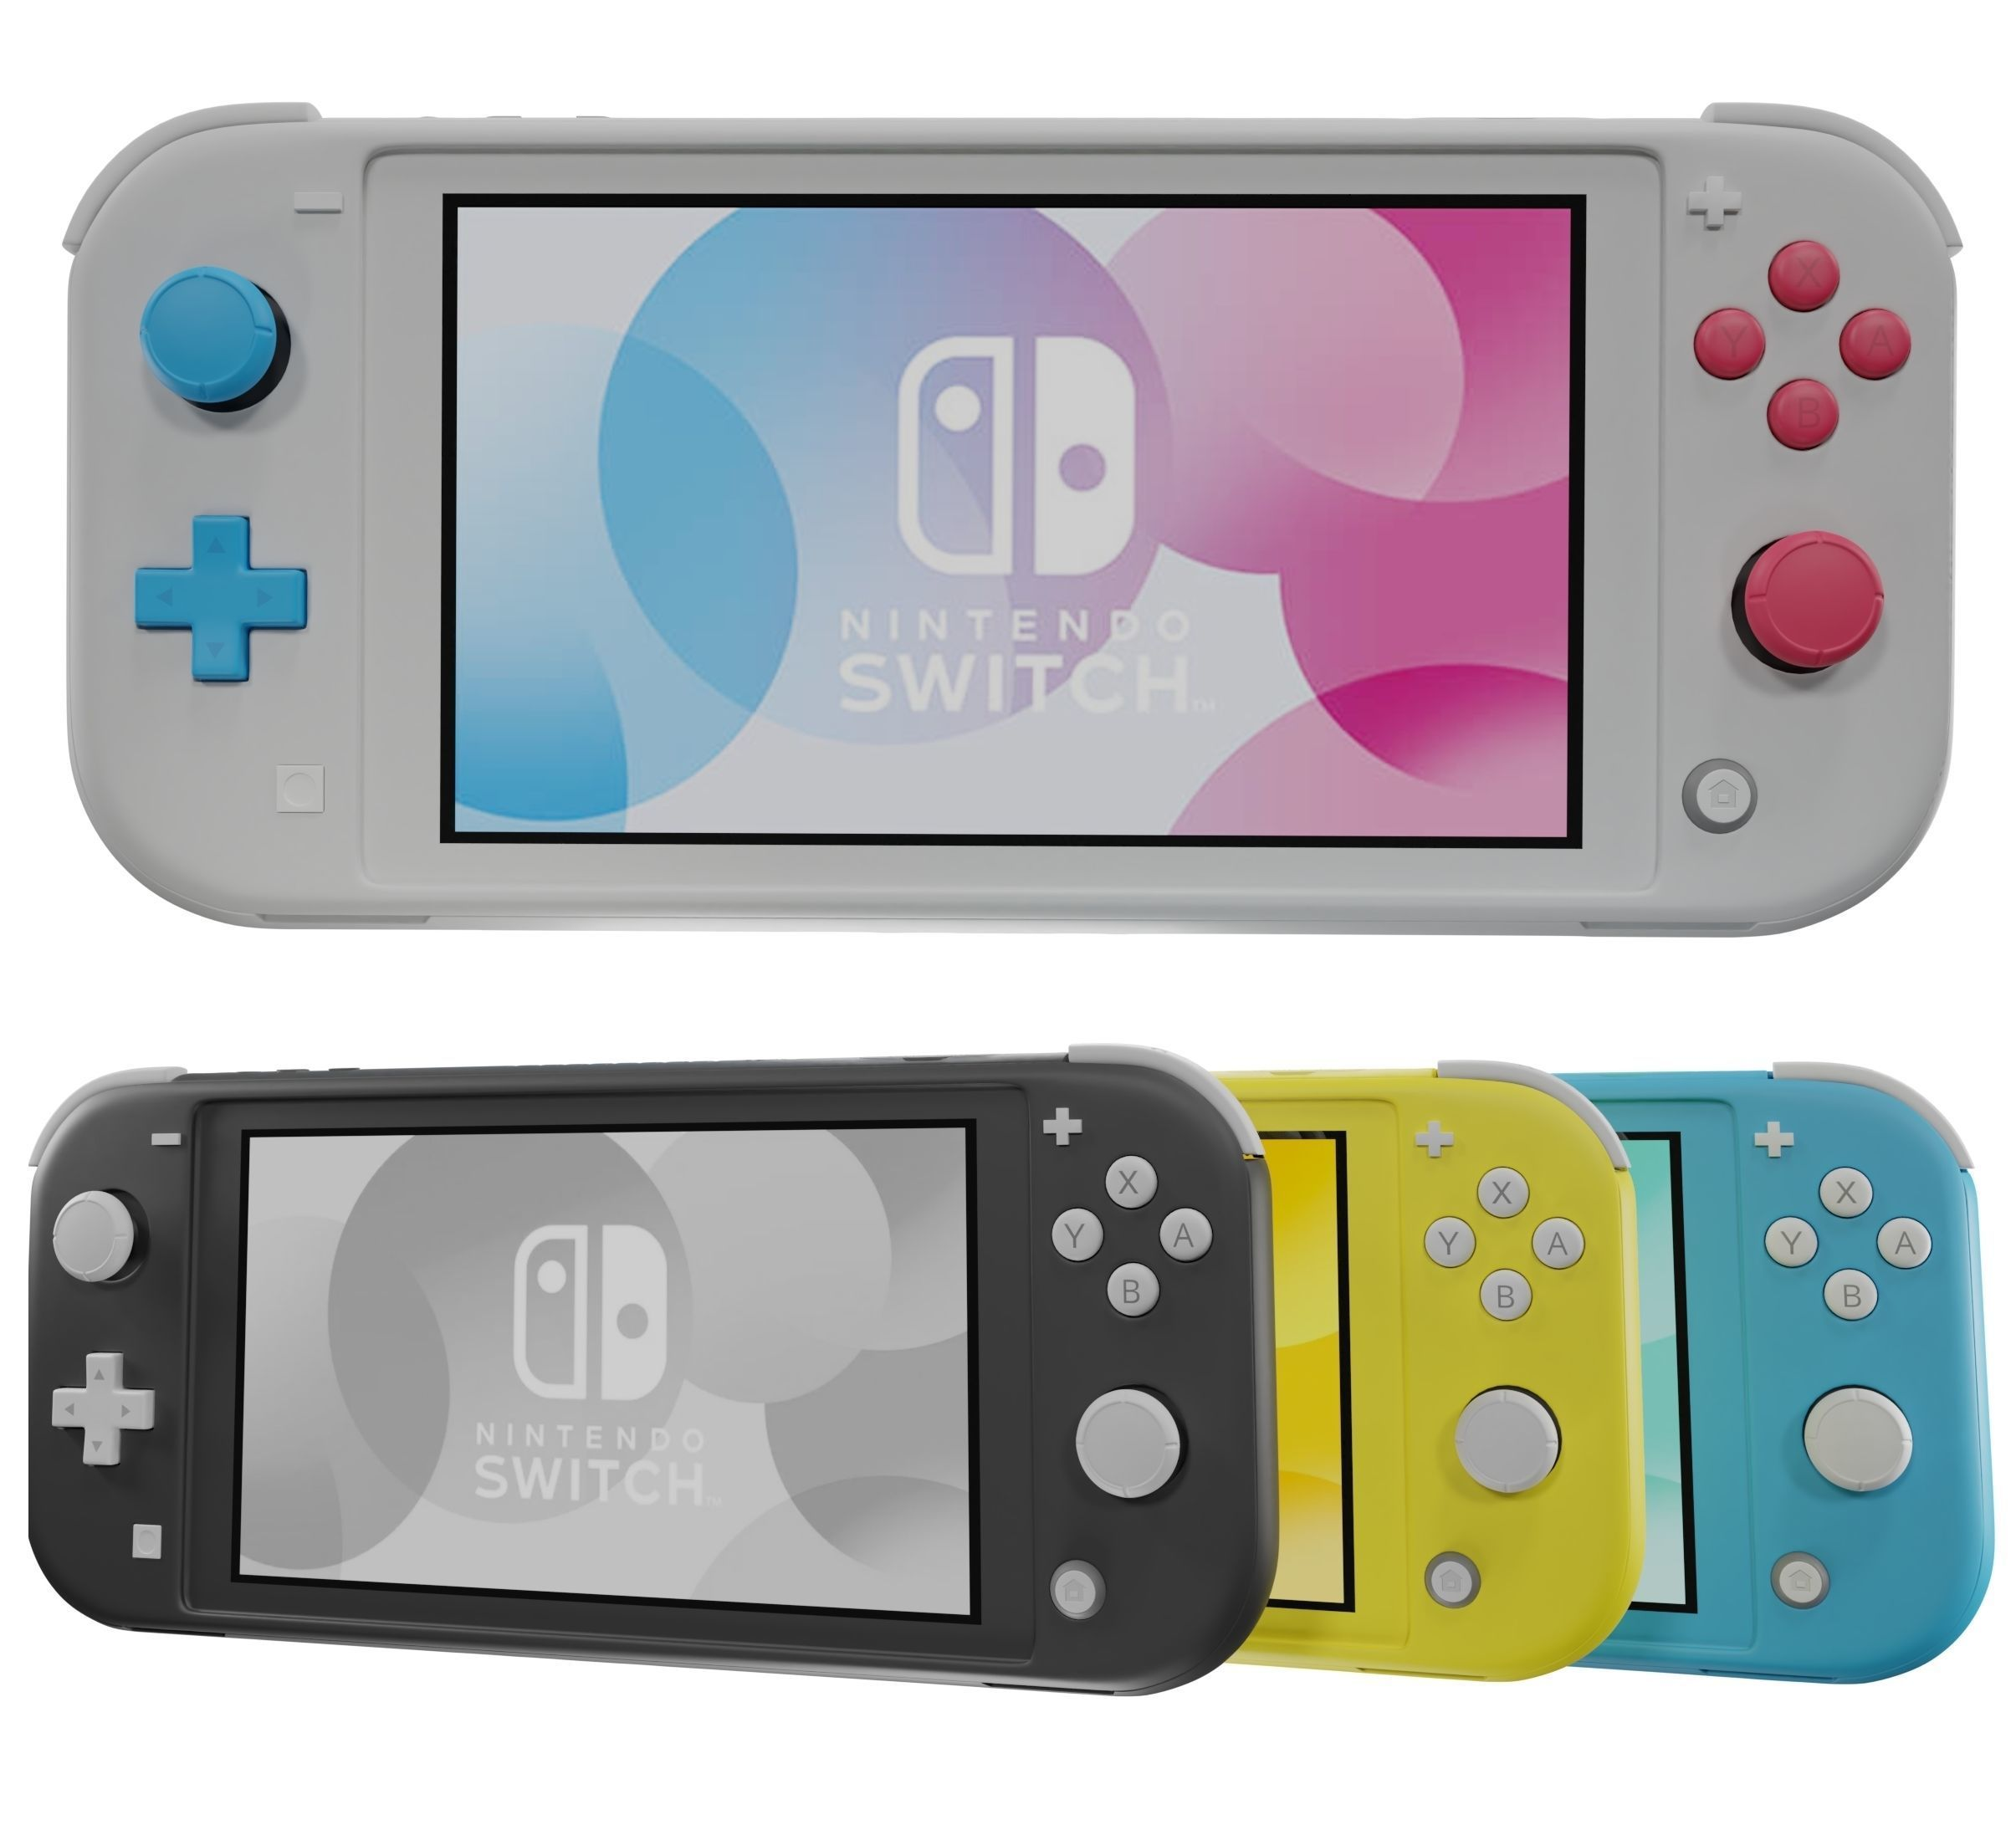 Does the Nintendo Switch Lite have a D-Pad?